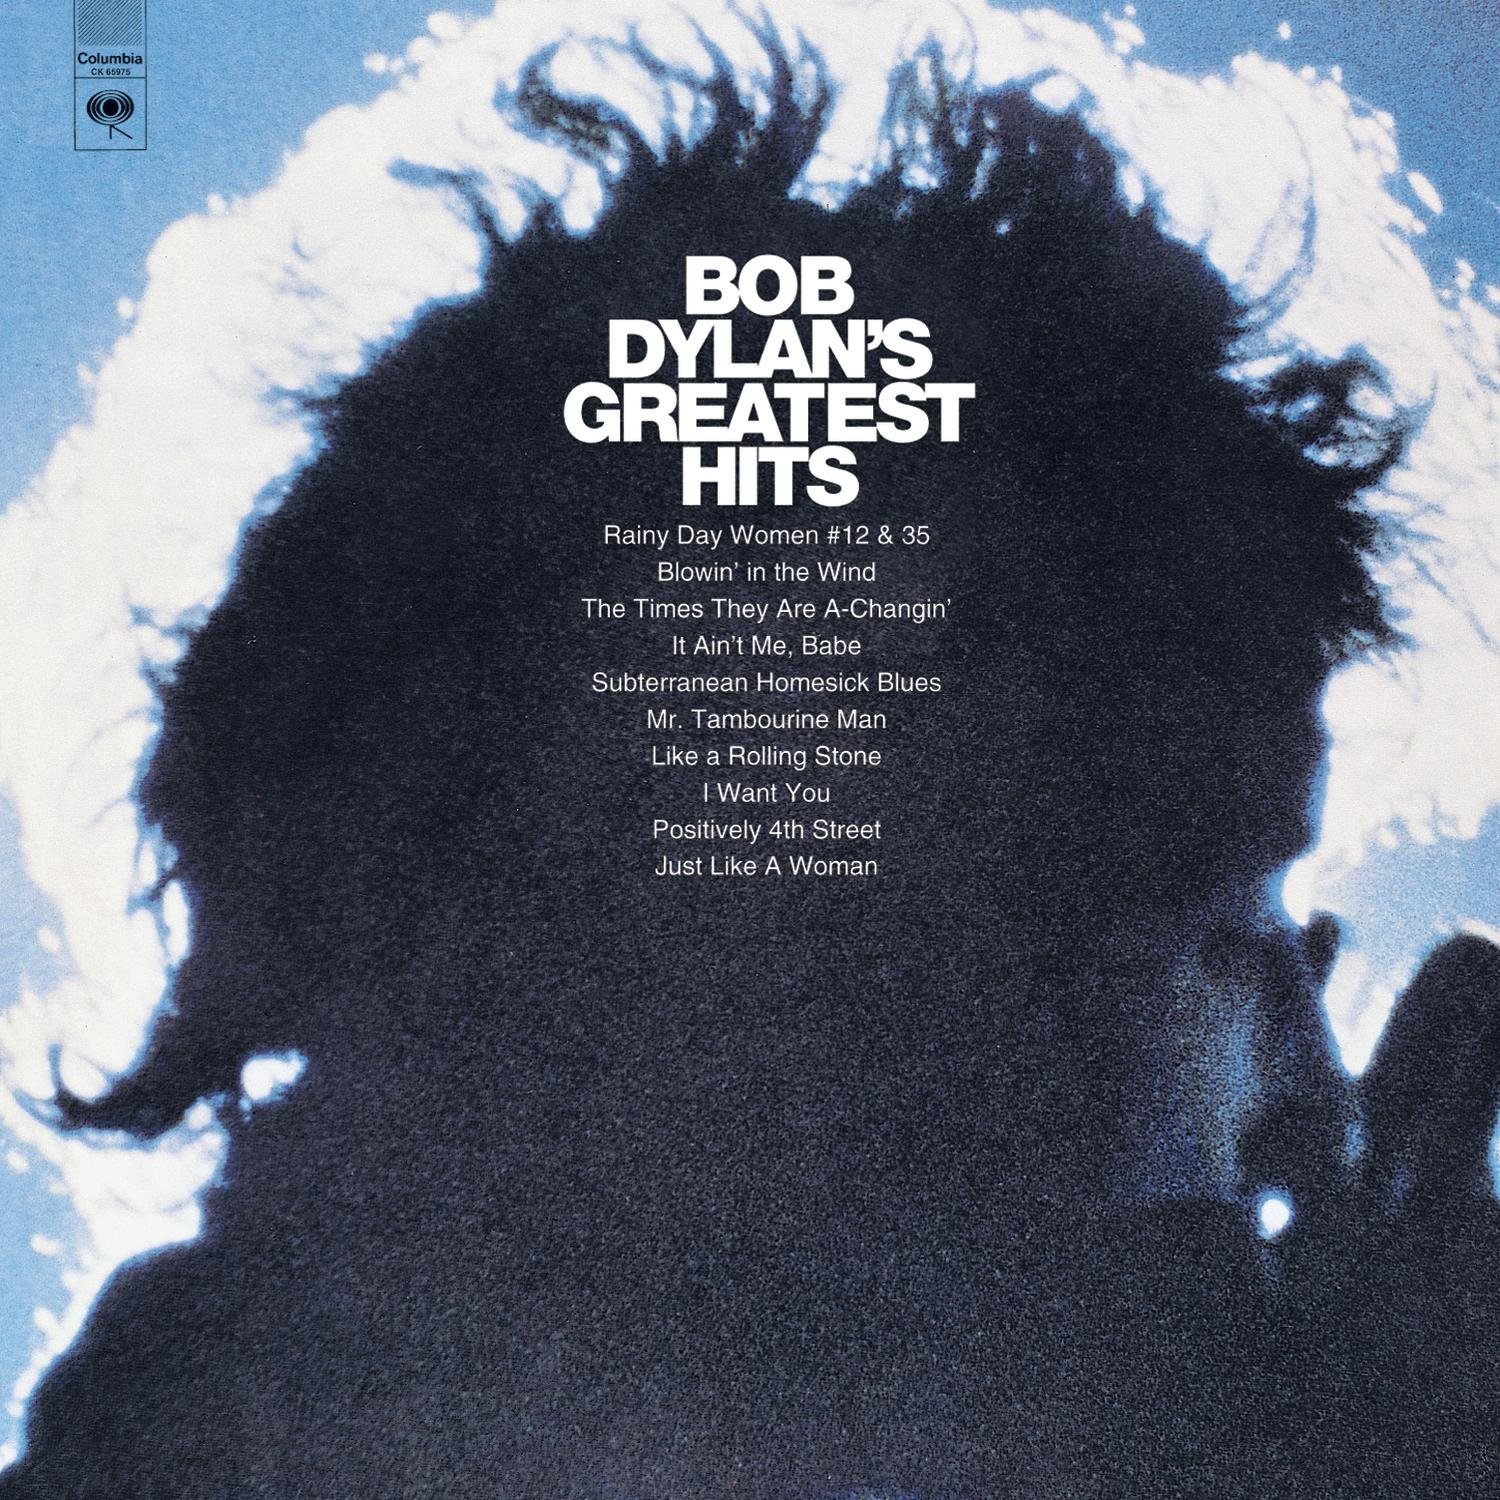 Bob Dylan's Greatest Hits Volume 3 – Wikipedia